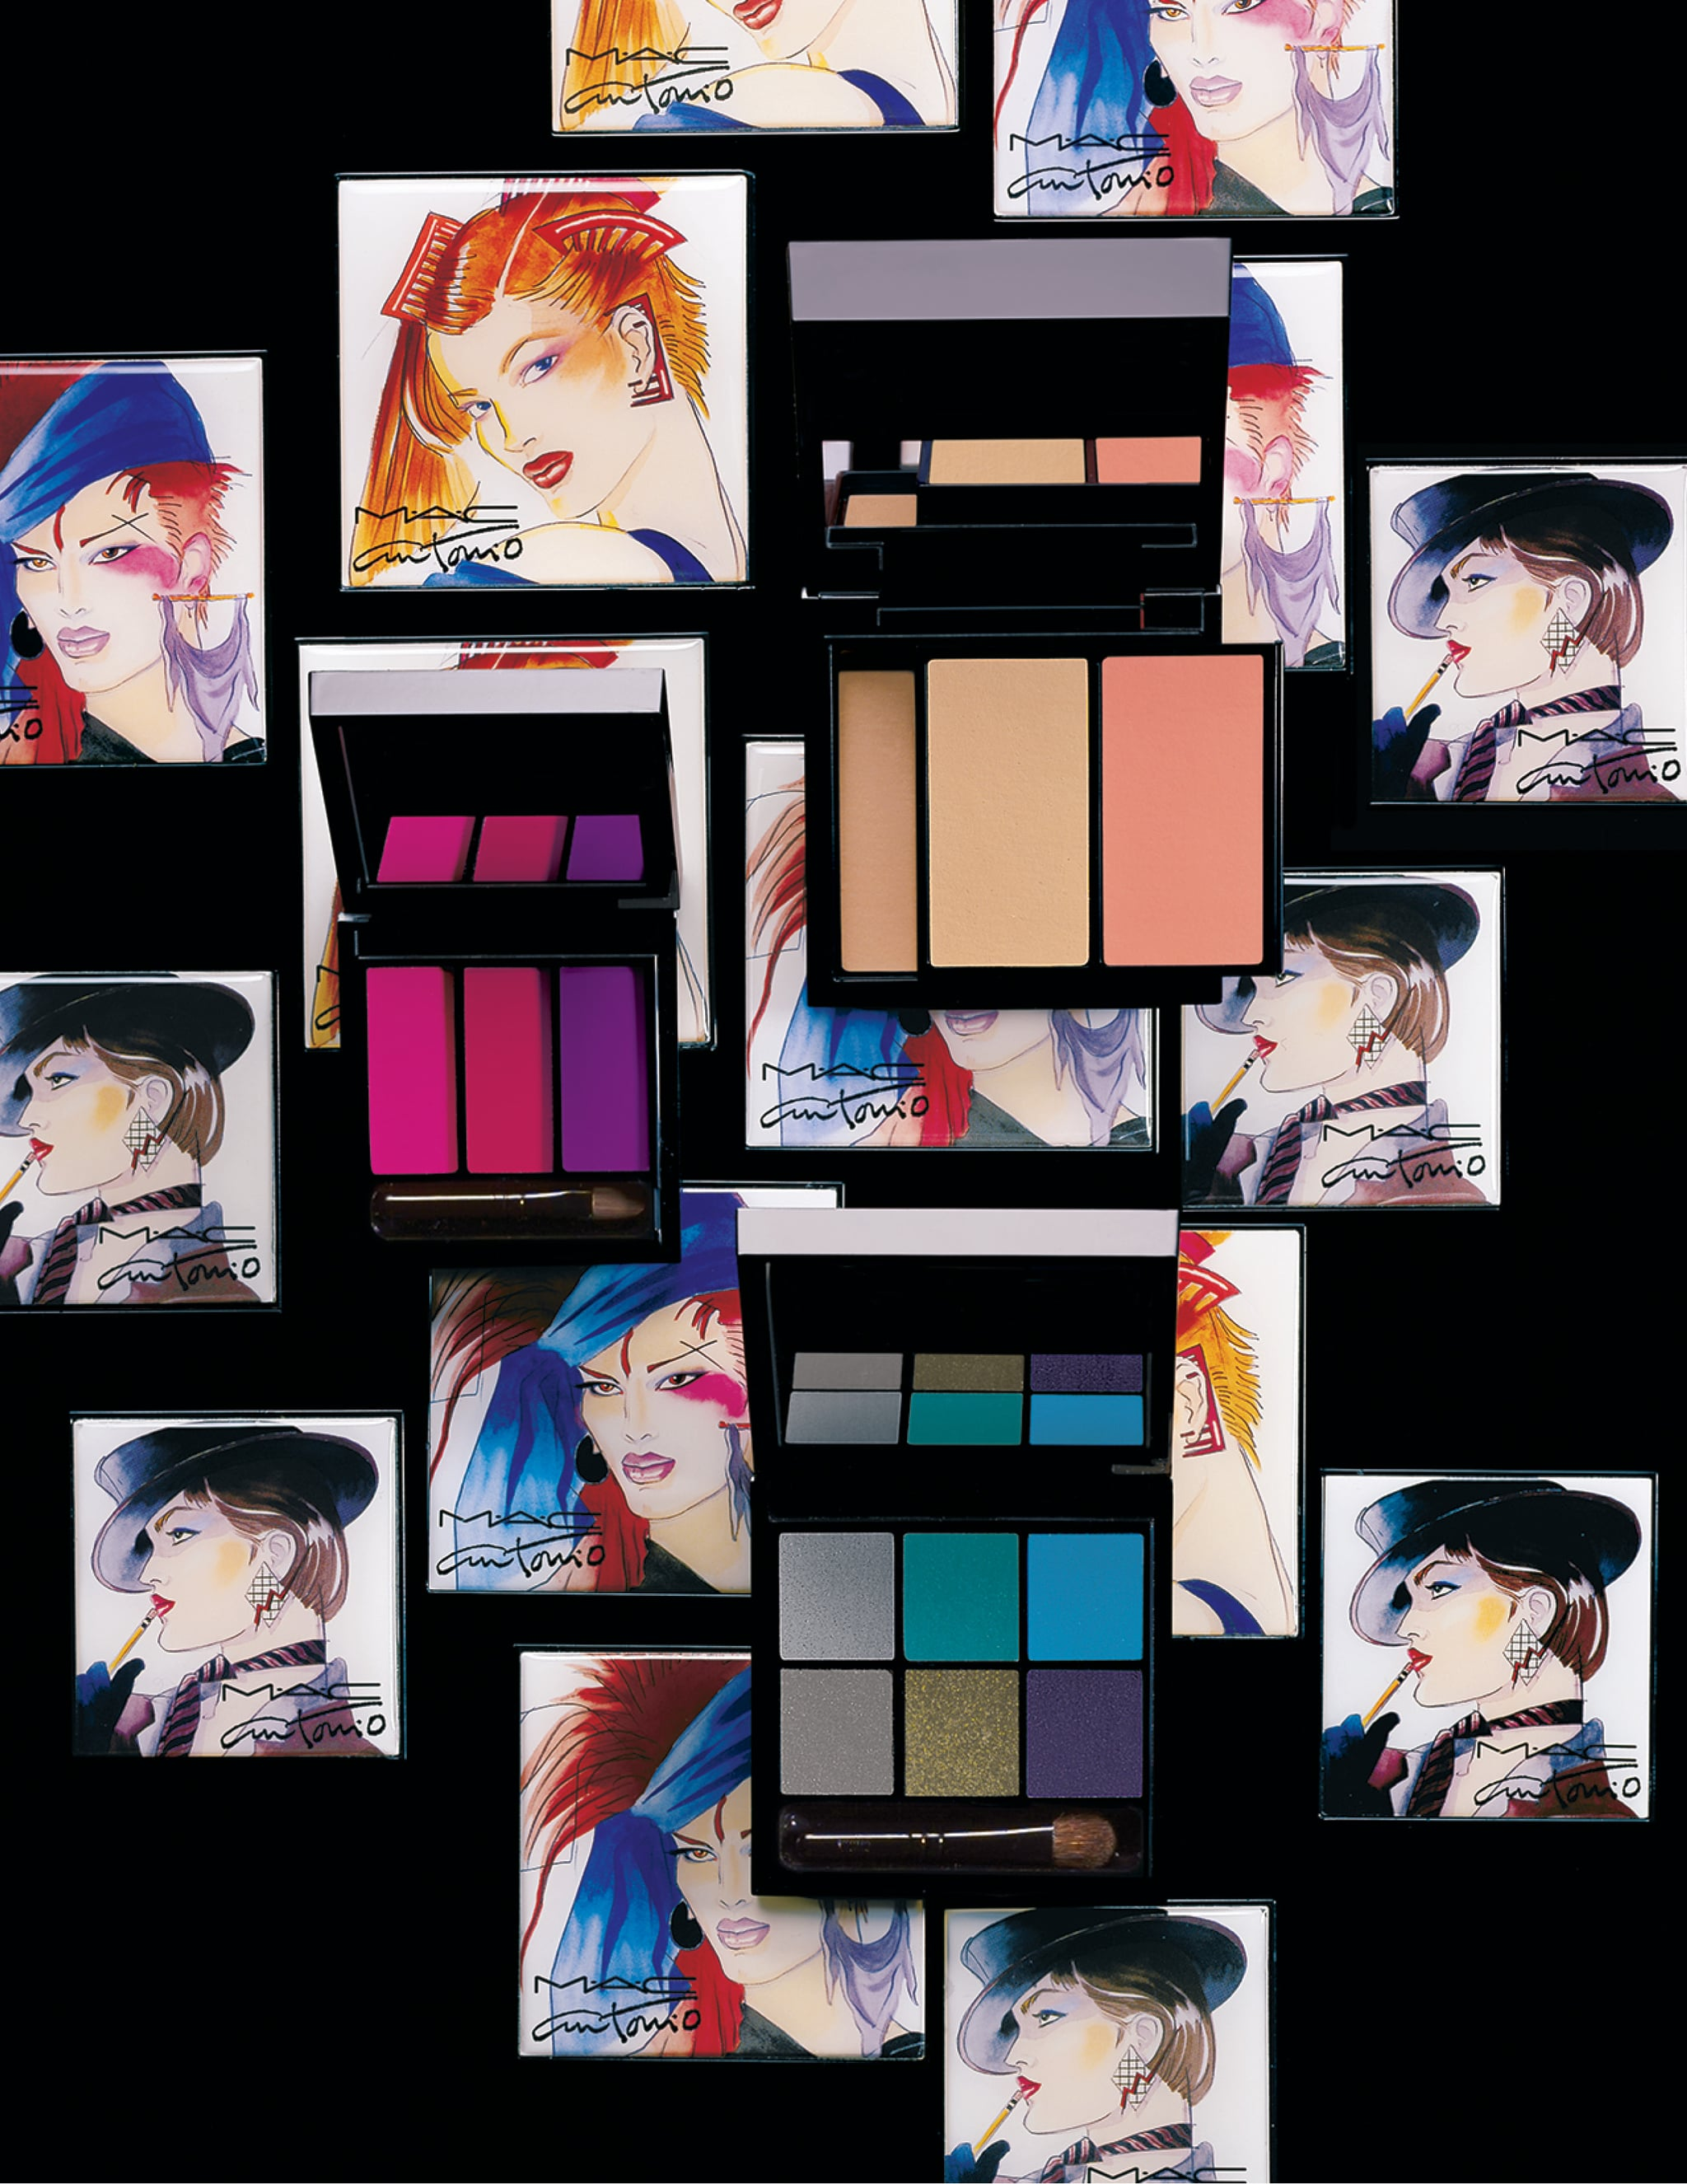 MAC Cosmetics has created a makeup line for Fall ($25-$55) inspired by the illustrations of Antonio Lopez. Available from now through October, the items are emblazoned with the designs of the famed artist.